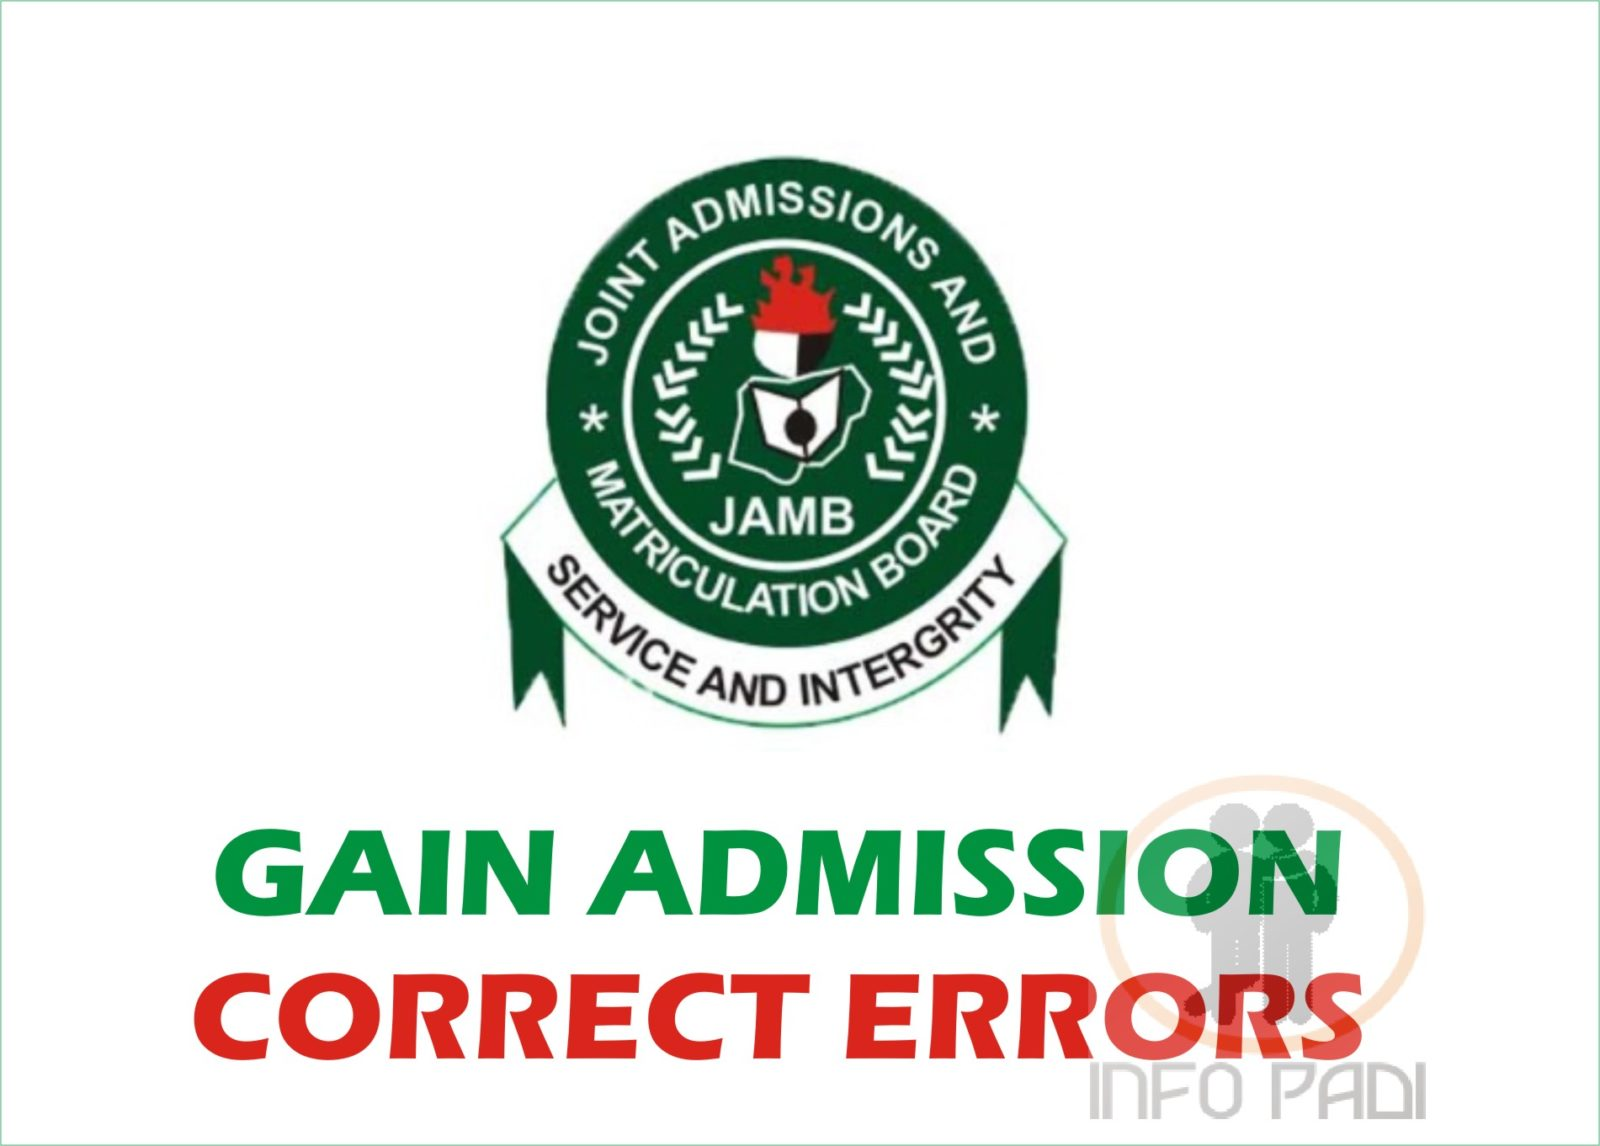 JAMB 2019- Exam date and how to ensure you gain admission no matter your JAMB score- success tips